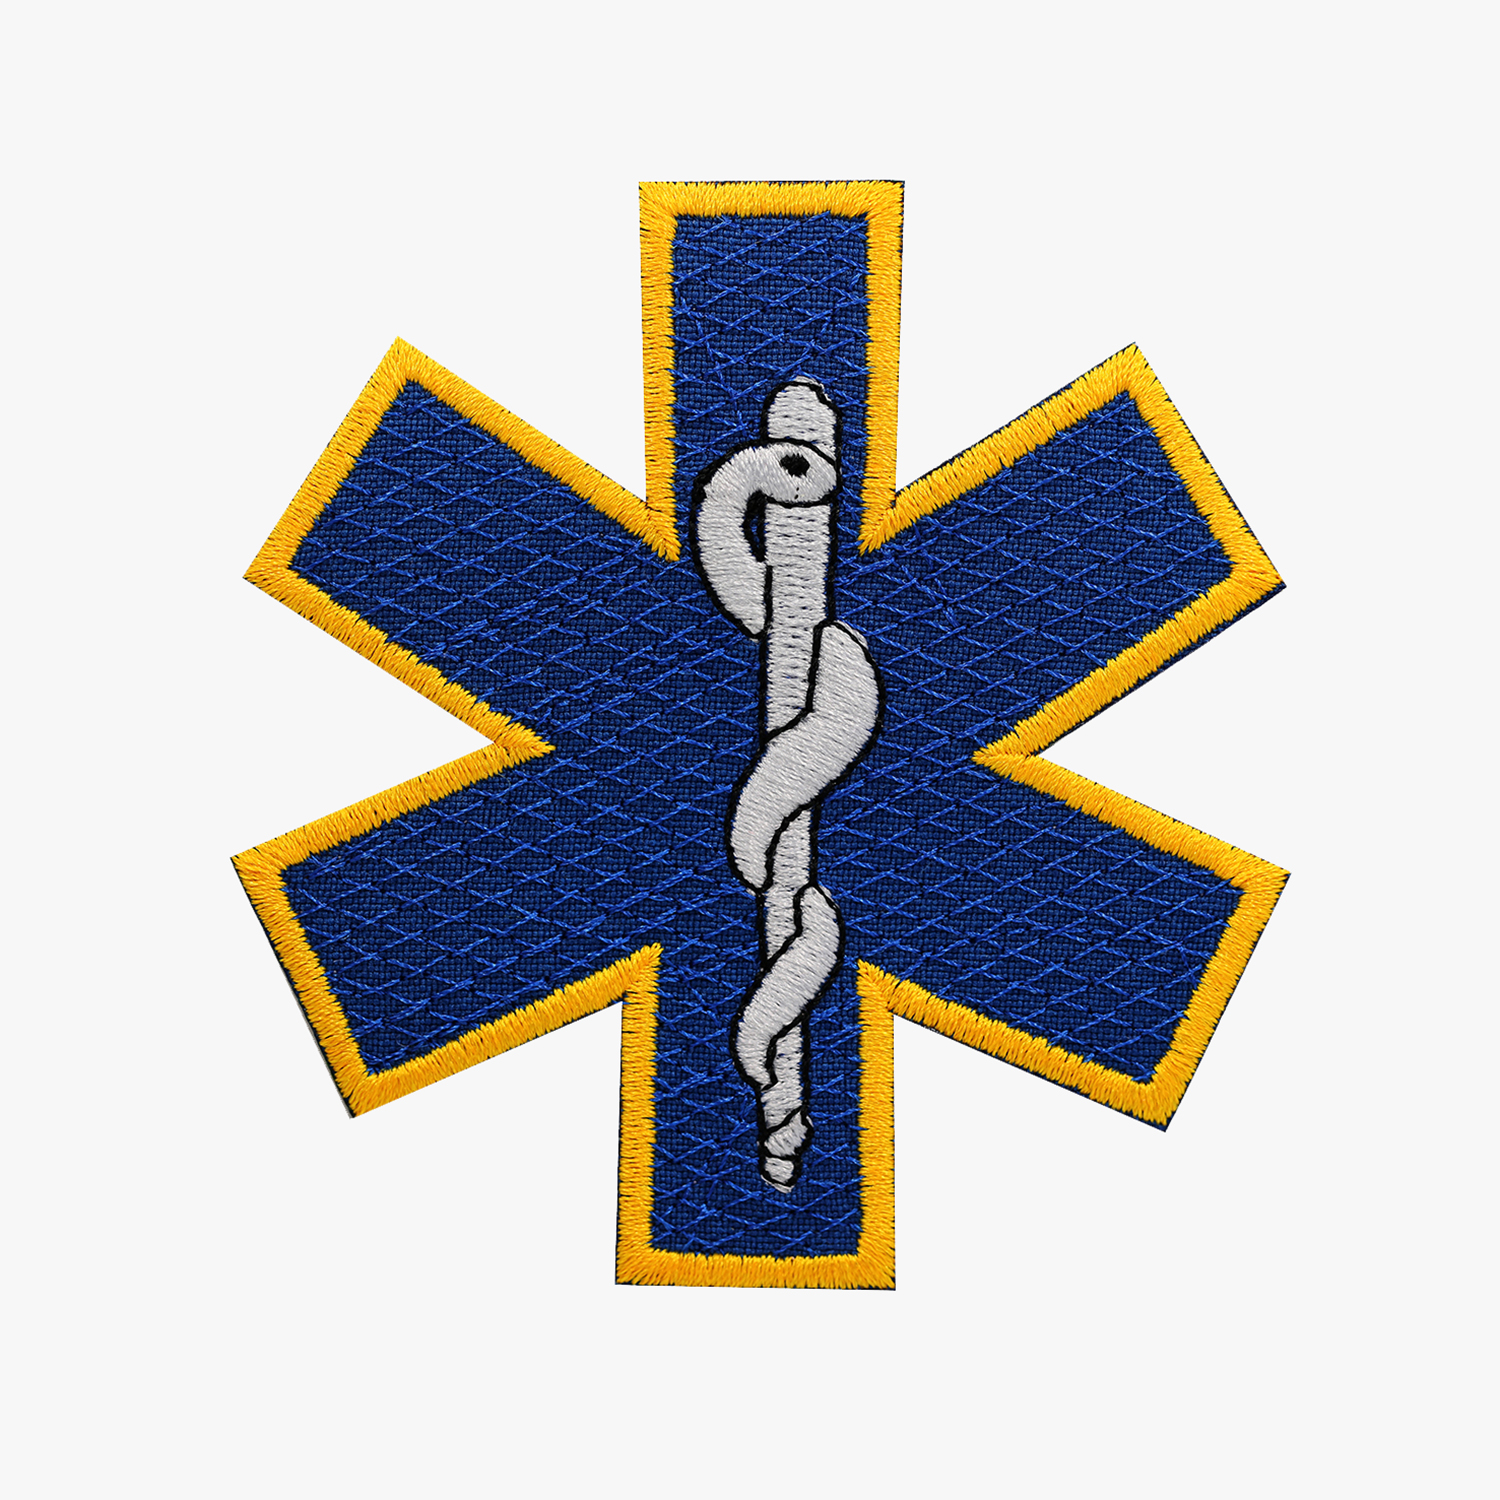 PARAMEDIC UNIFORM EMBROIDERY PATCH